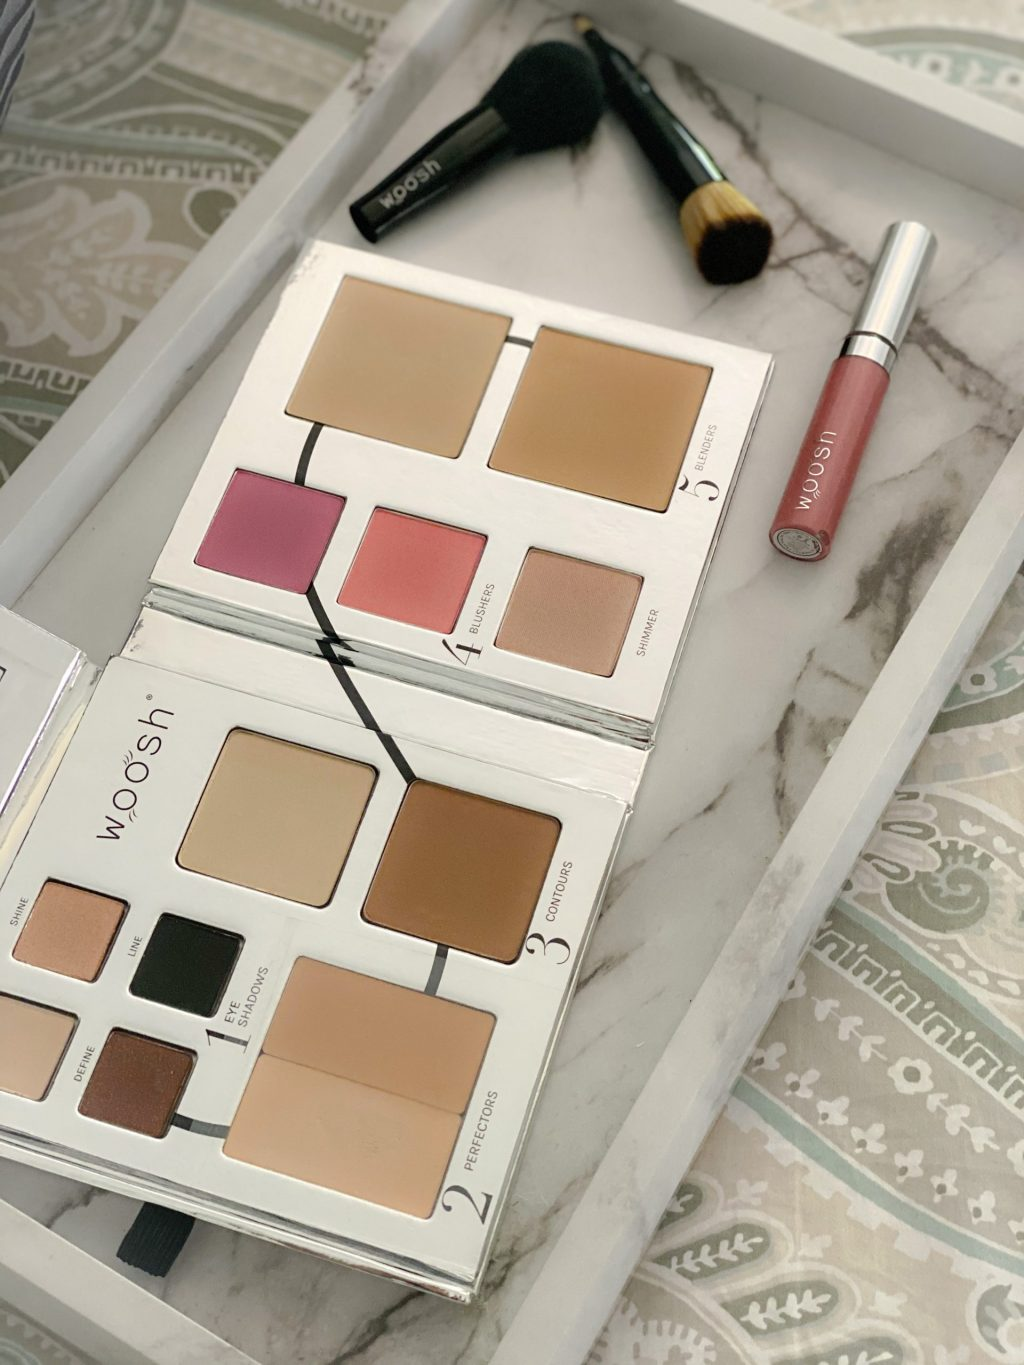 makeup palette, pink lip gloss and black makeup brushes on white and gray tray